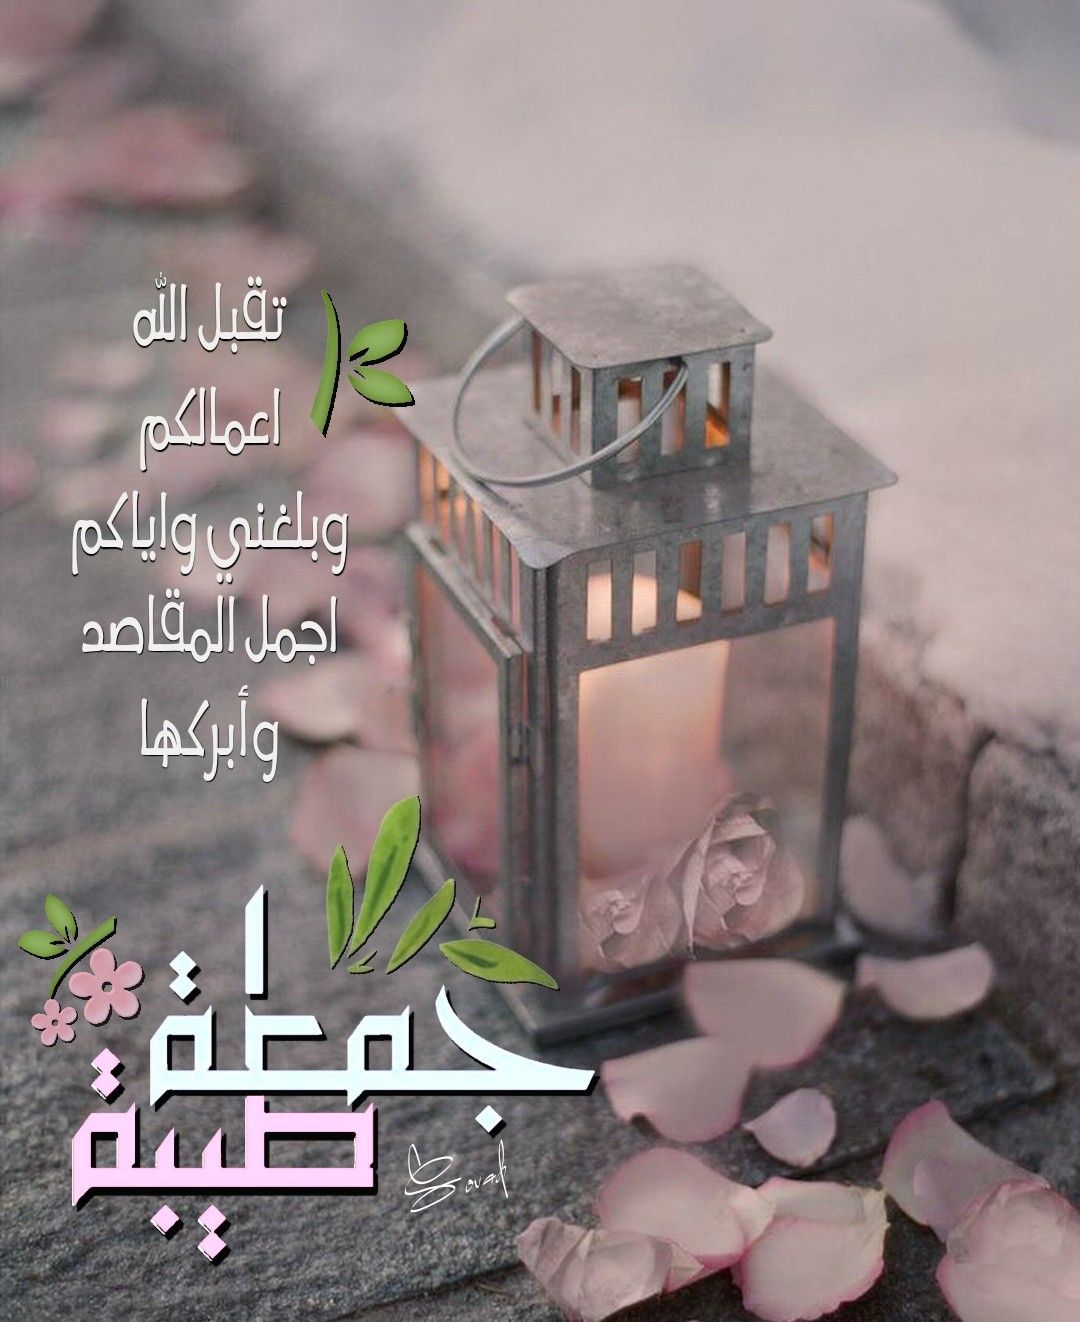 جمعة طيبة مباركة Jumma Mubarak Images Good Morning Greetings Islamic Images